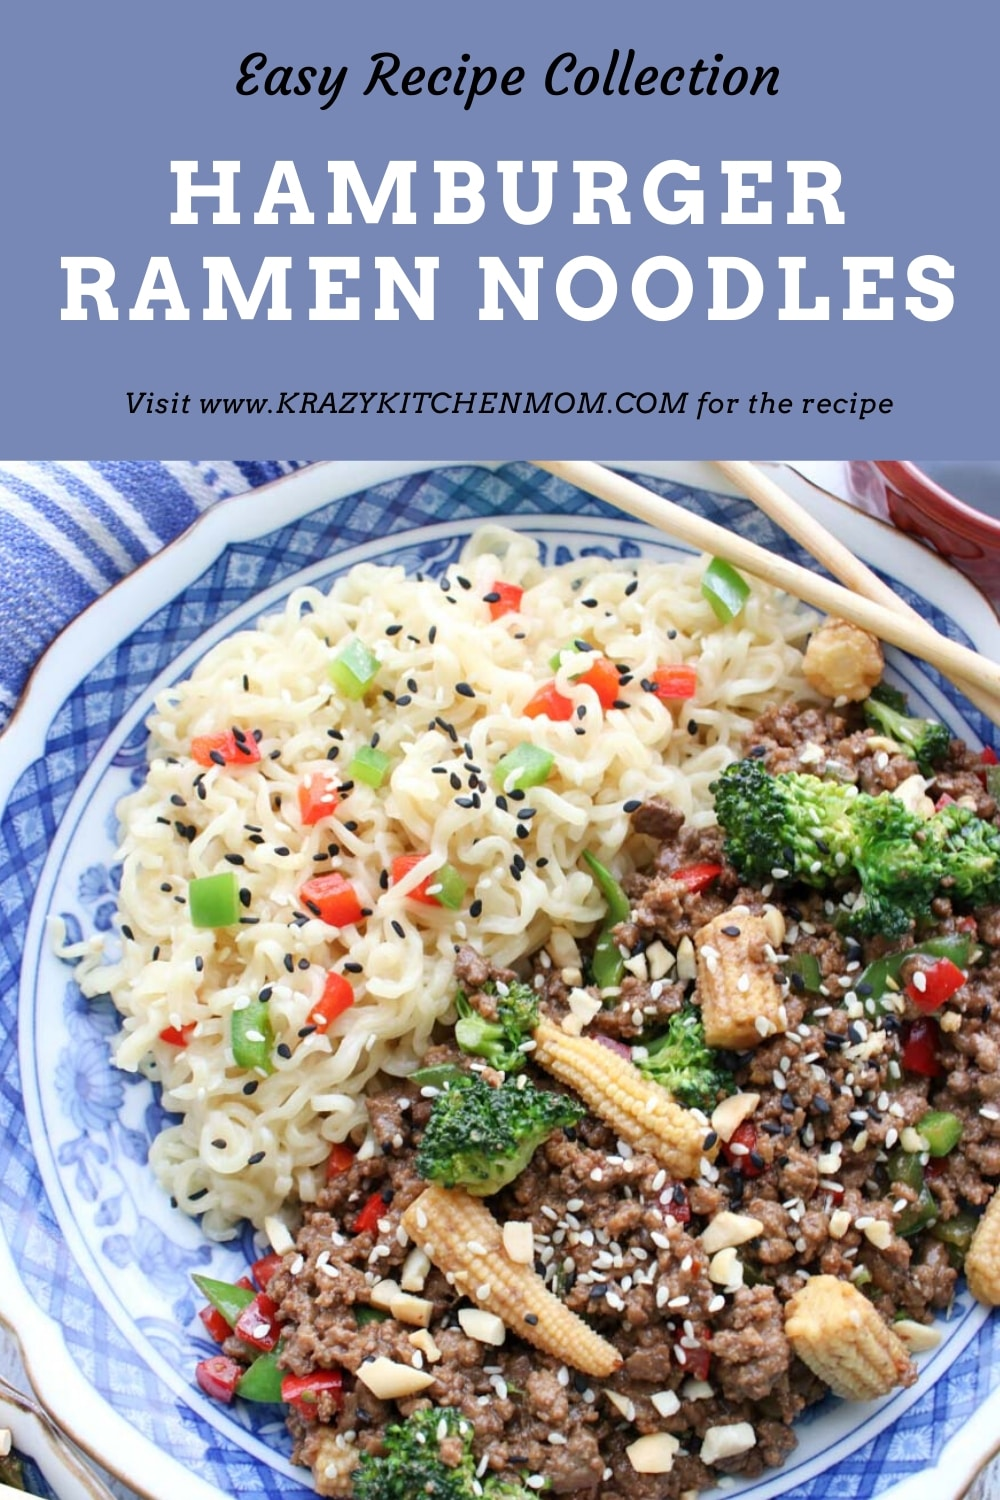 All you need to make Hamburger Ramen Noodles is ground beef, some veggies, some Asian flavors, and ramen noodles.  via @krazykitchenmom